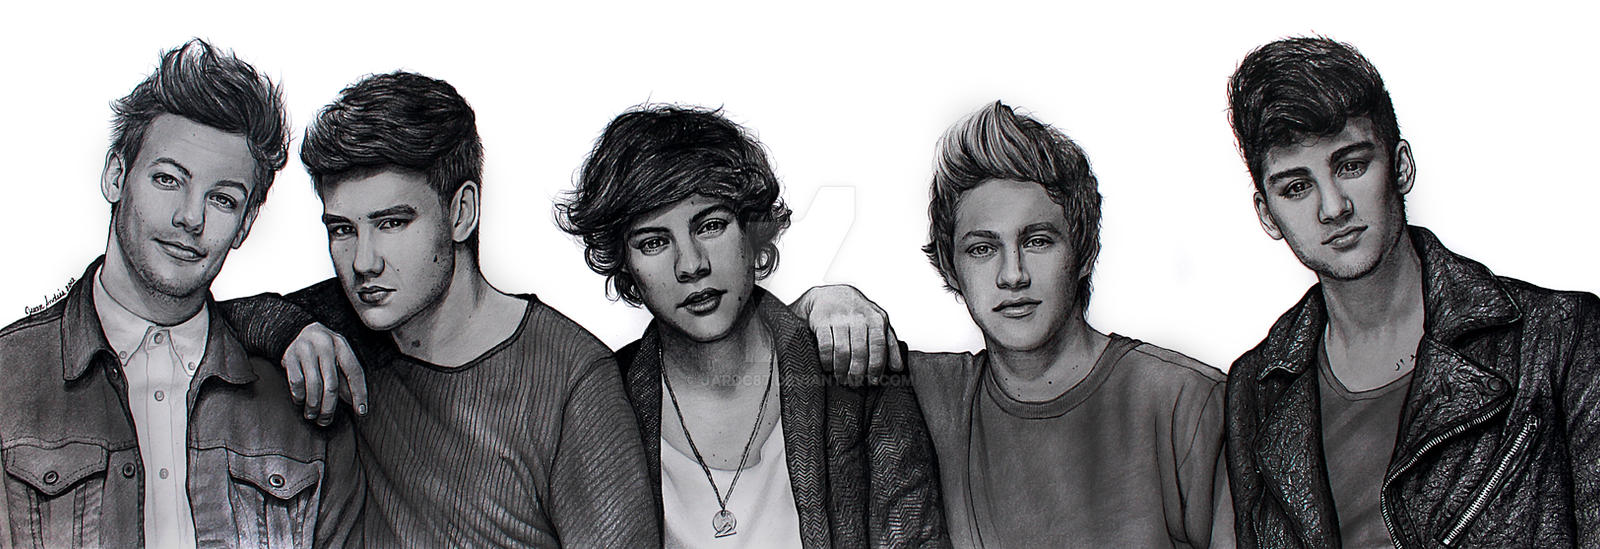 One Direction by jardc87